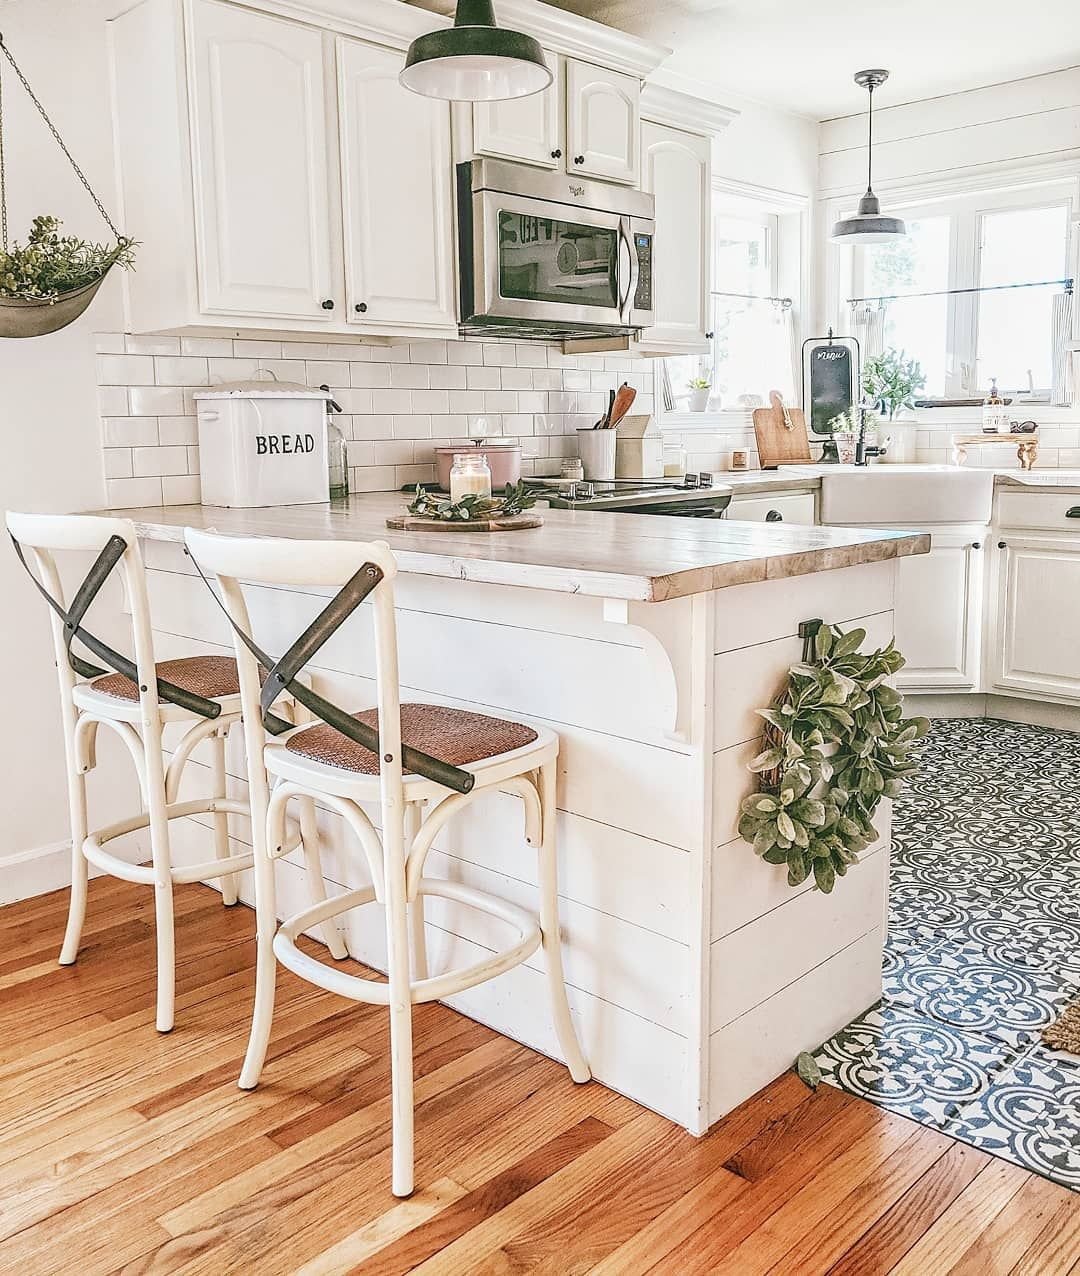 Erica Home Diy Motherhood On Instagram Hi Friends Good Morning After Track And Fi Kitchen Remodel Small Rustic Farmhouse Kitchen Farmhouse Kitchen Decor